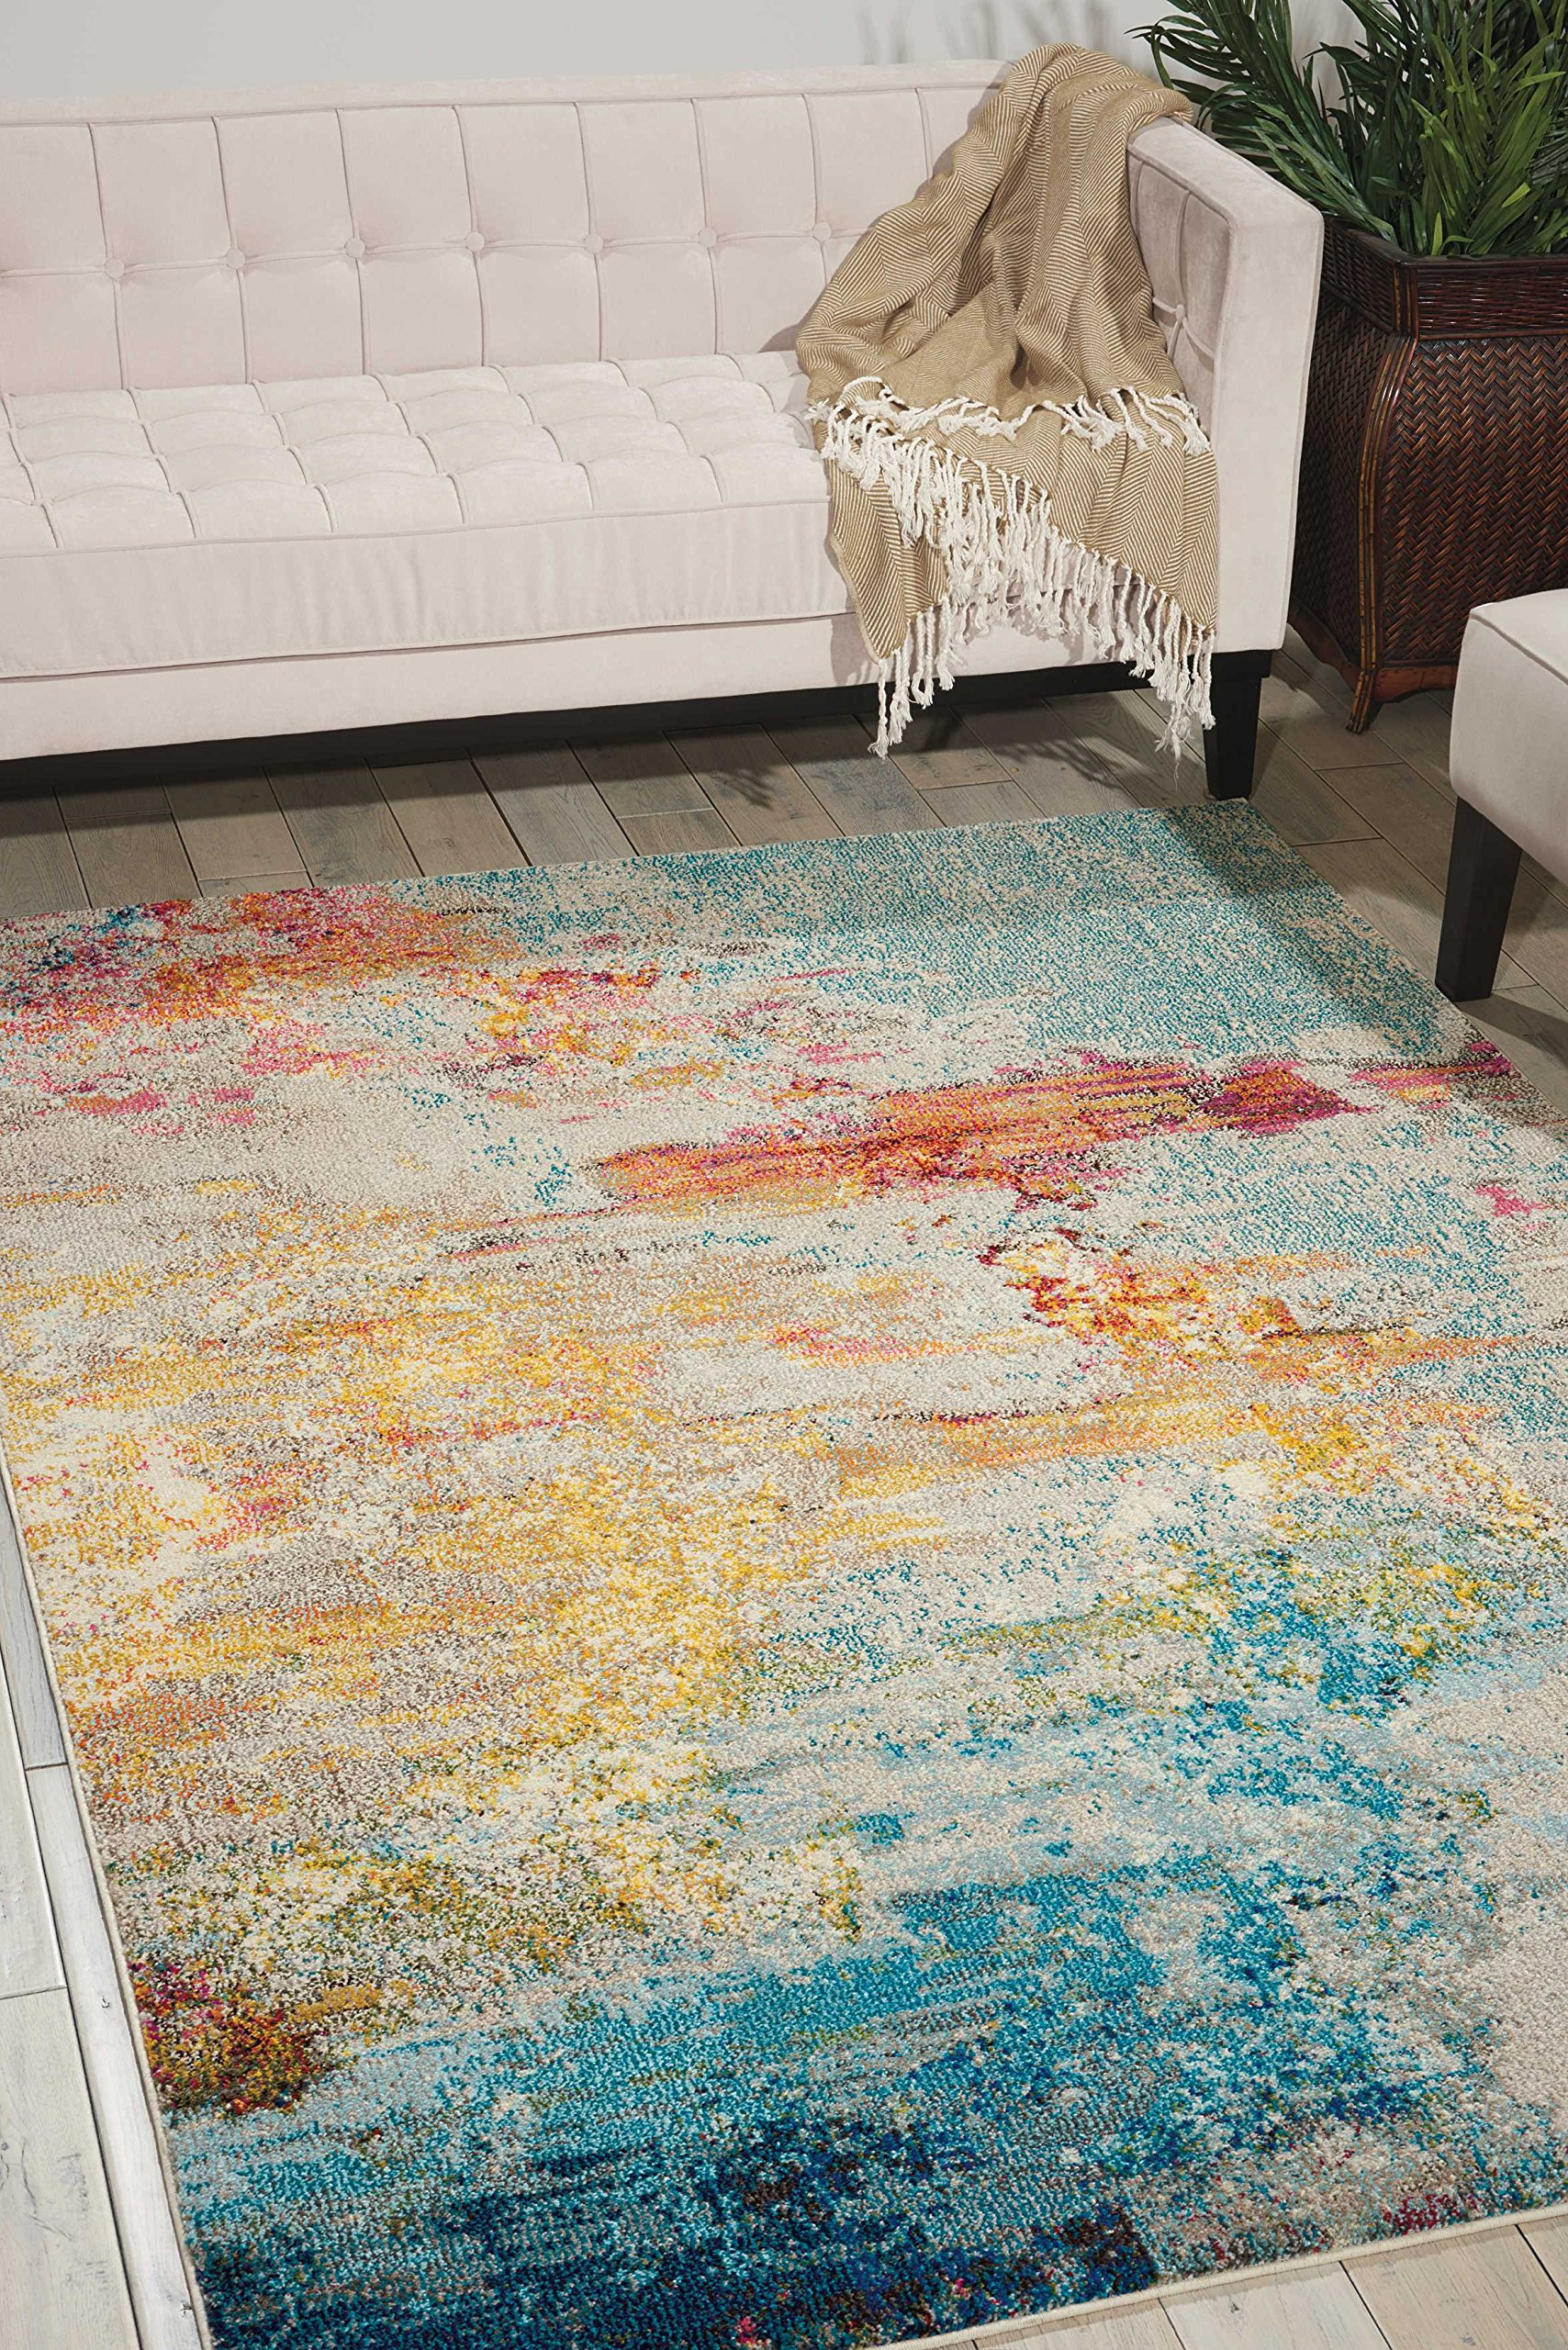 Nourison Celestial (CES02) Modern Watercolor Area Rug, 5'3'' x 7'3'', Multicolor Sealife by Nourison